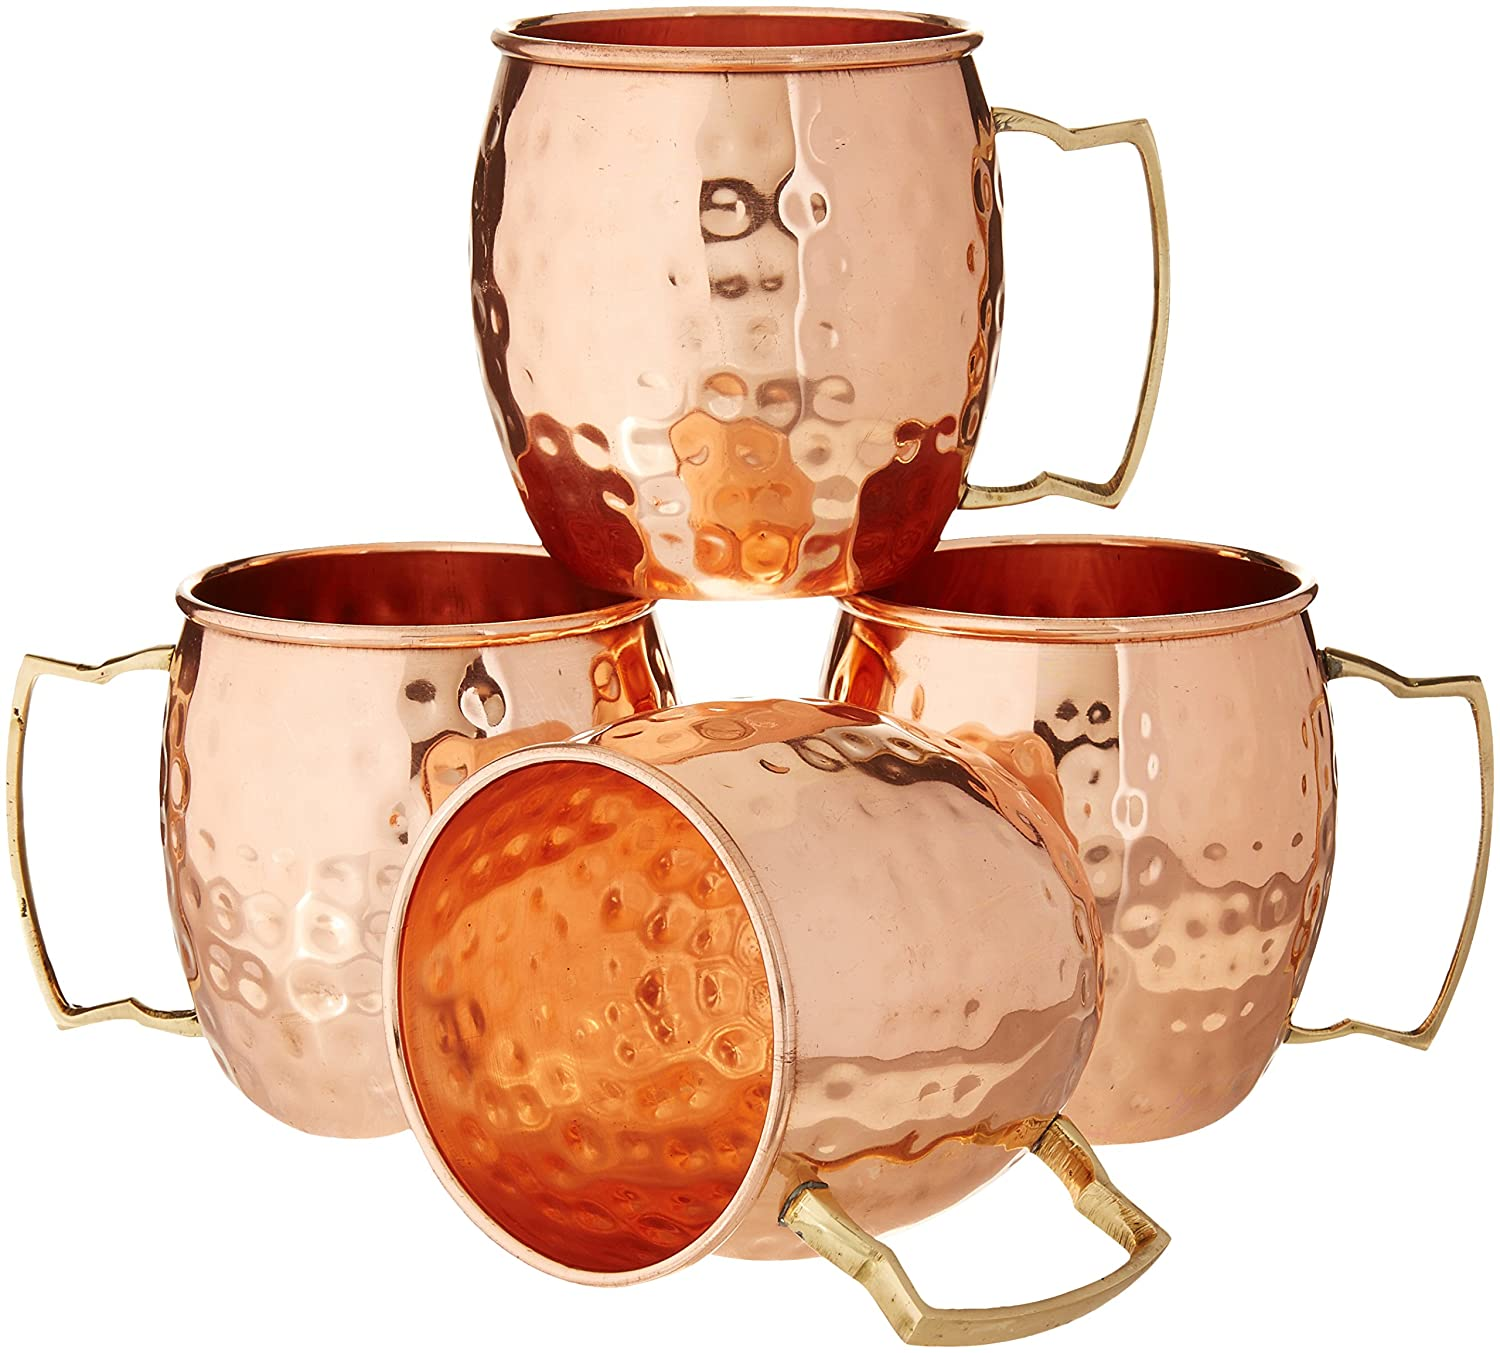 Zap Impex ® Pure Copper Hammered Moscow Mule Mug with Solid Brass Handle Set of 4-16 Ounce SYNCHKG103019